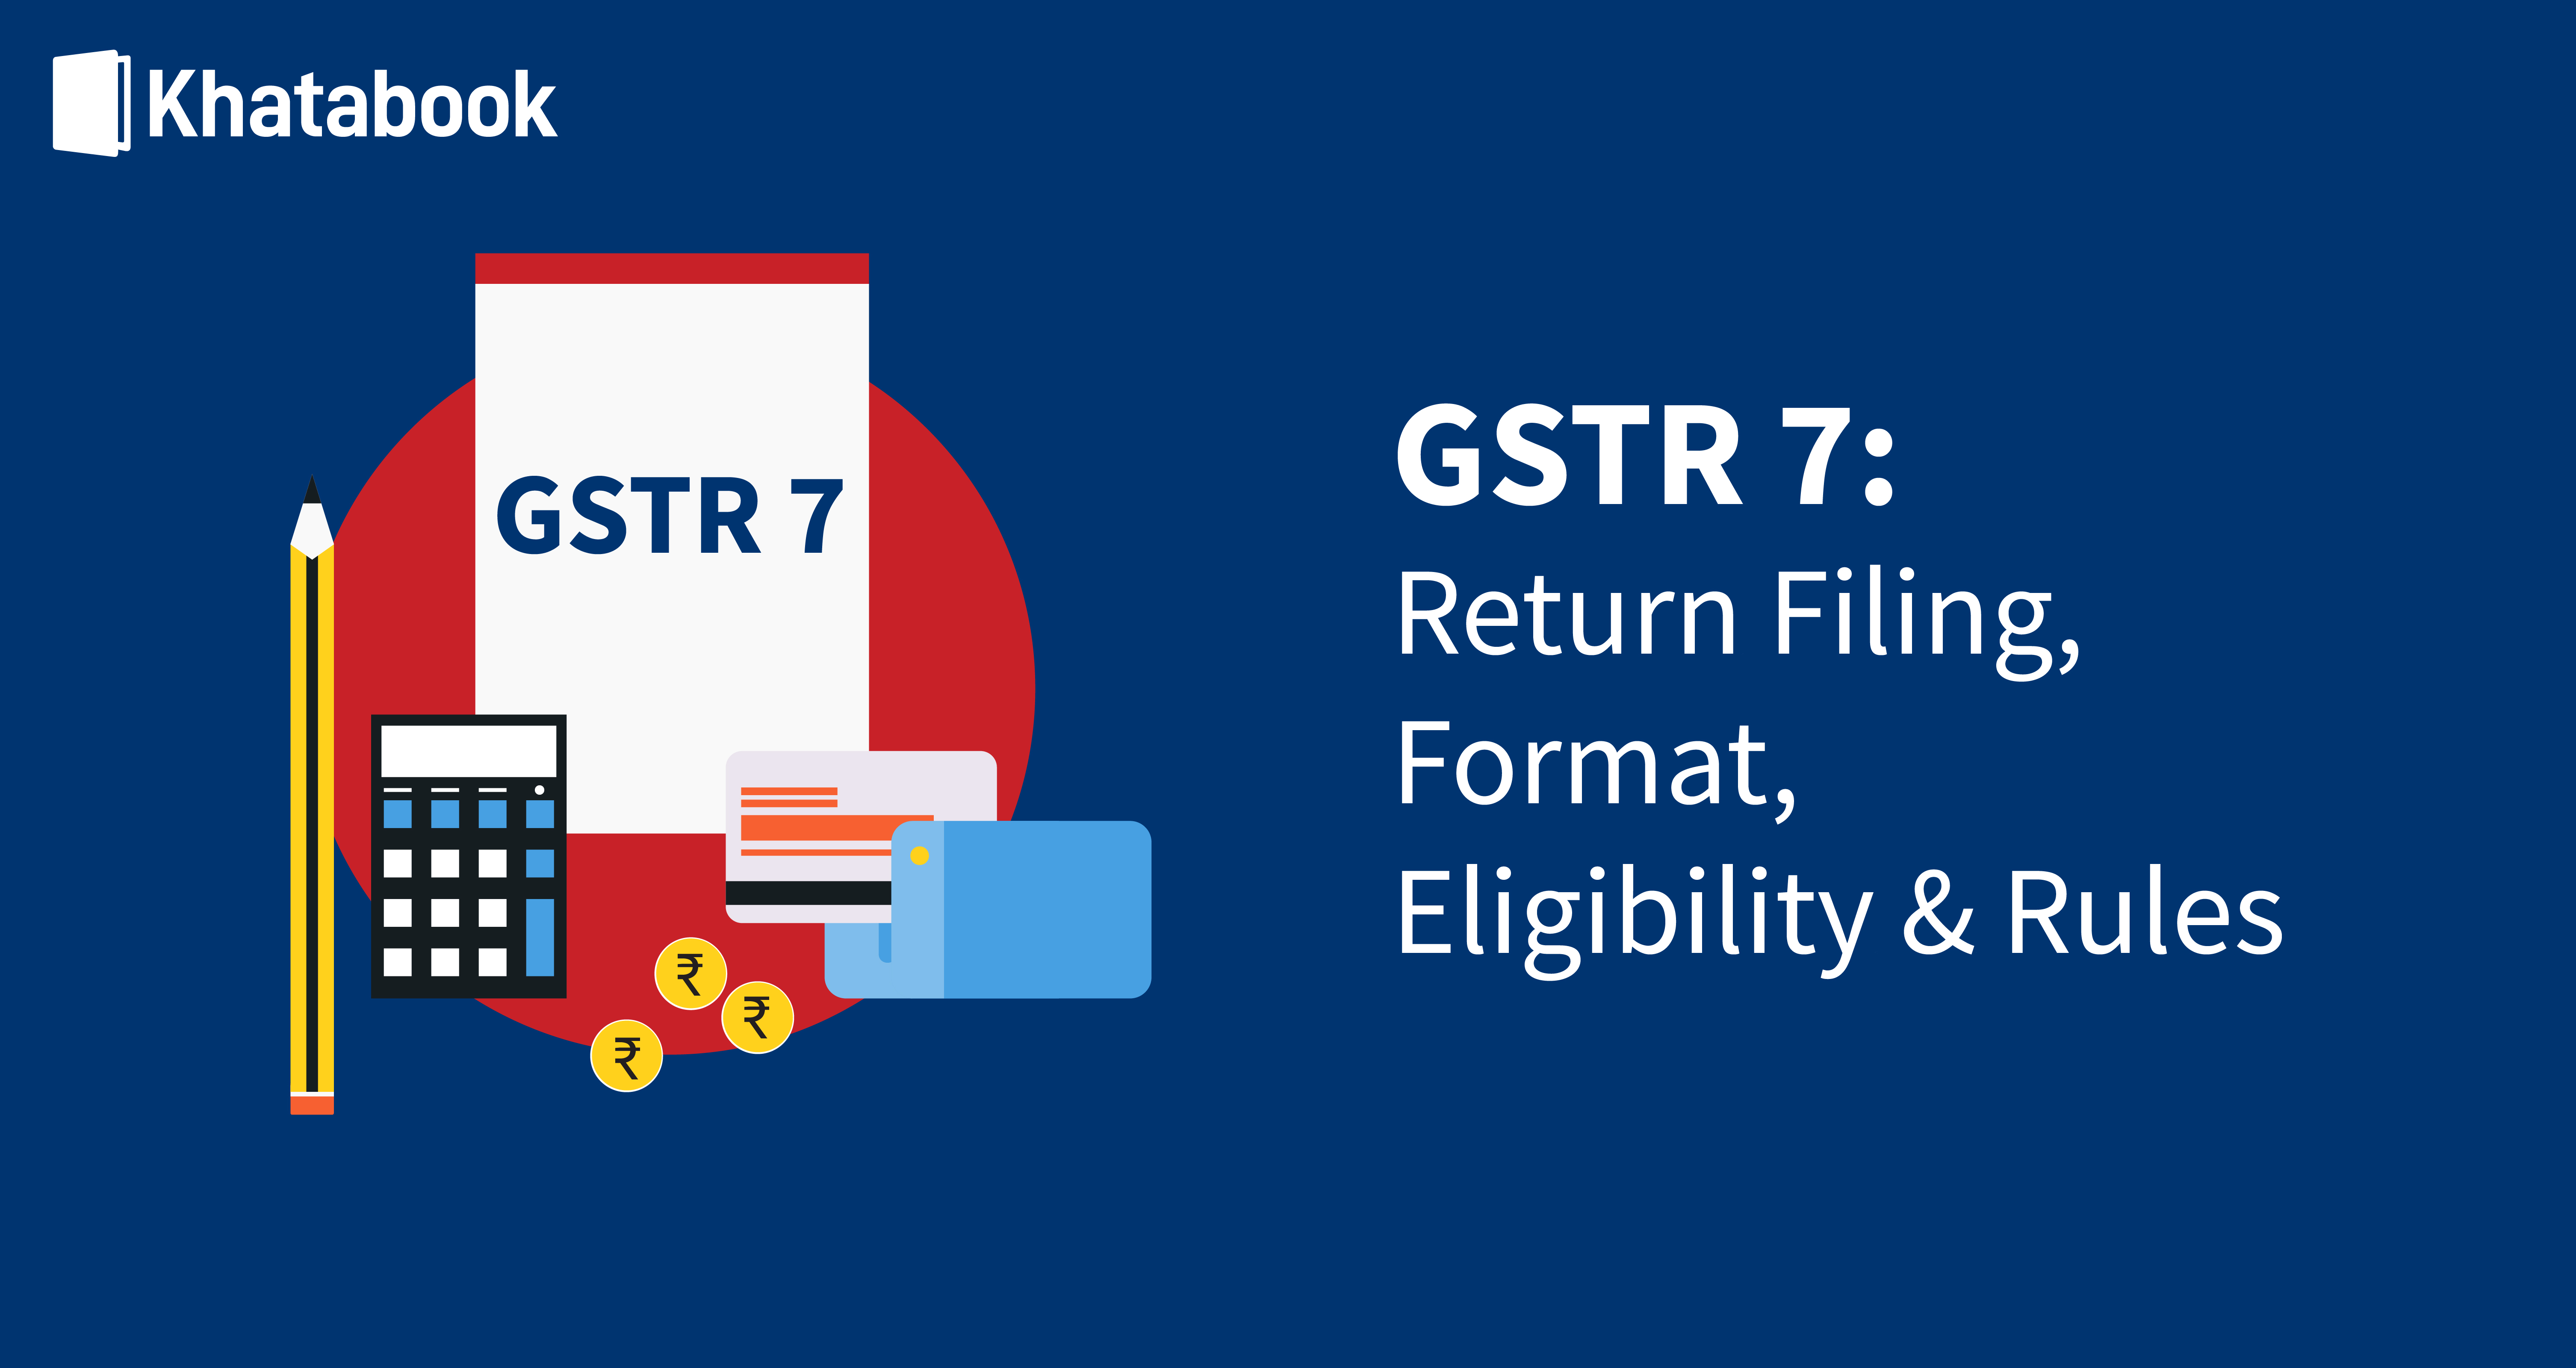 How To File GSTR 7: See Return Filing, Format, Eligibility